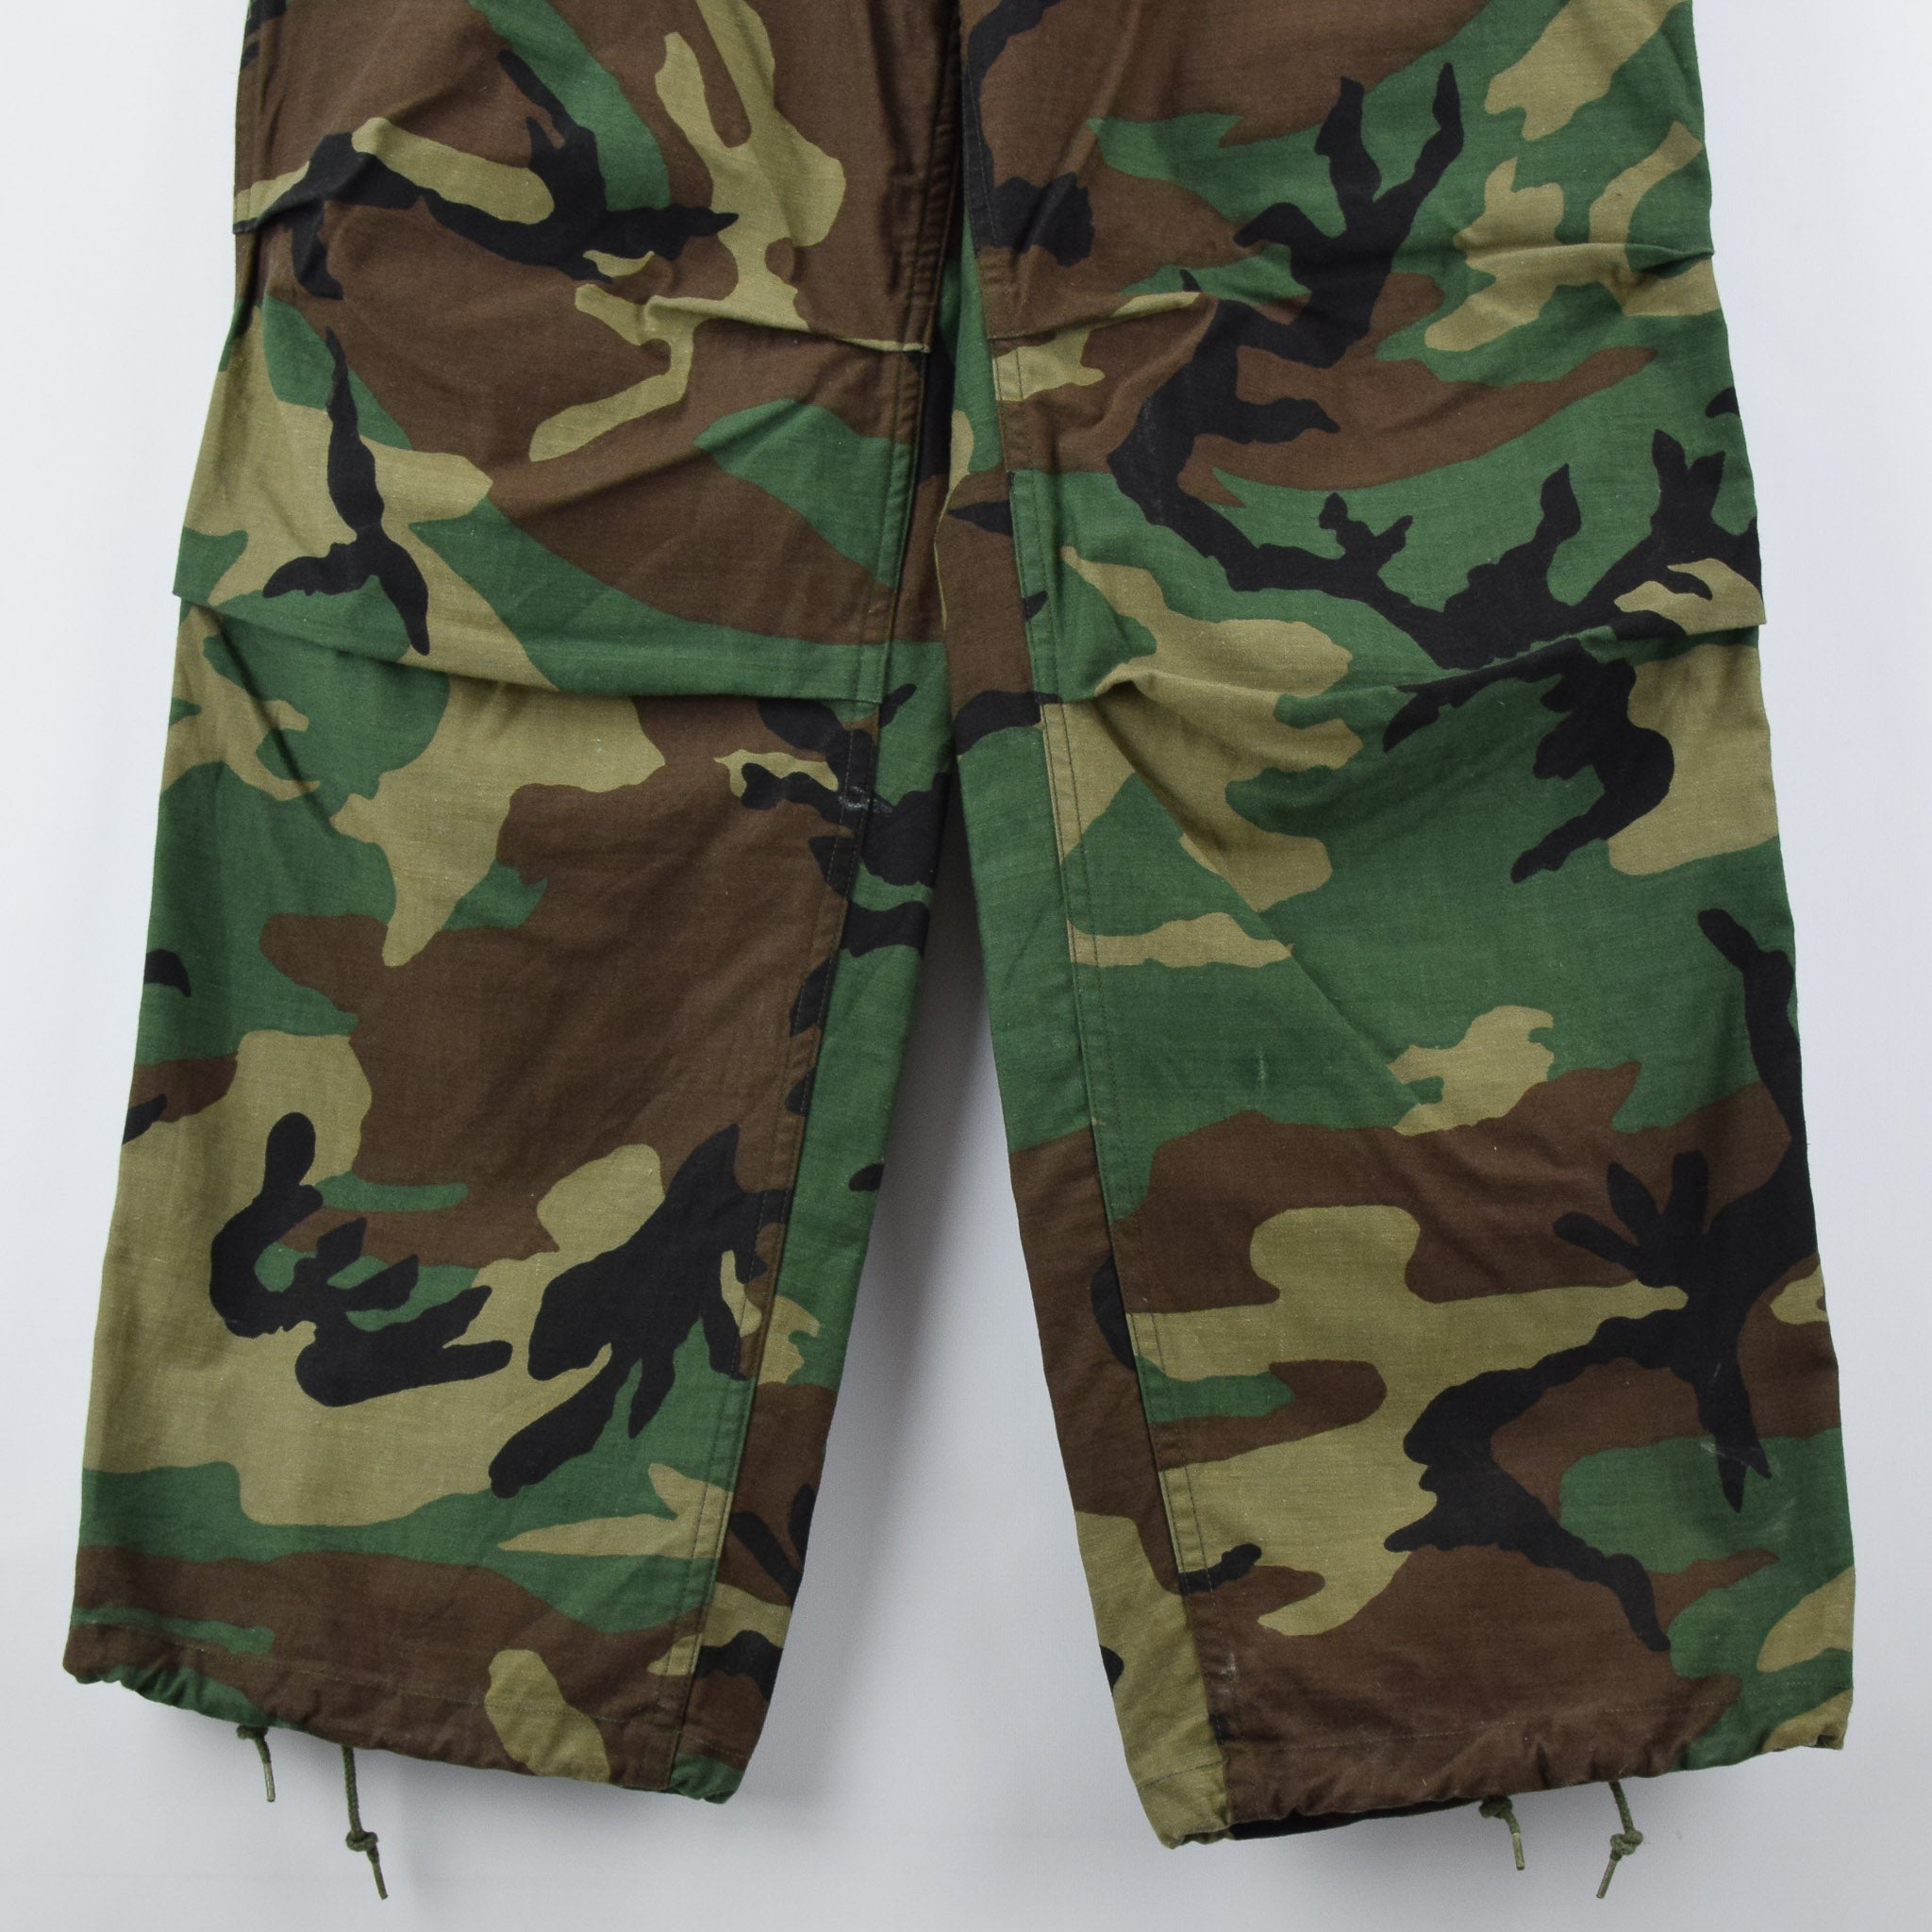 frVintage 80s US Army Camo Cold Weather Military Combat Field Trousers M Long front hem